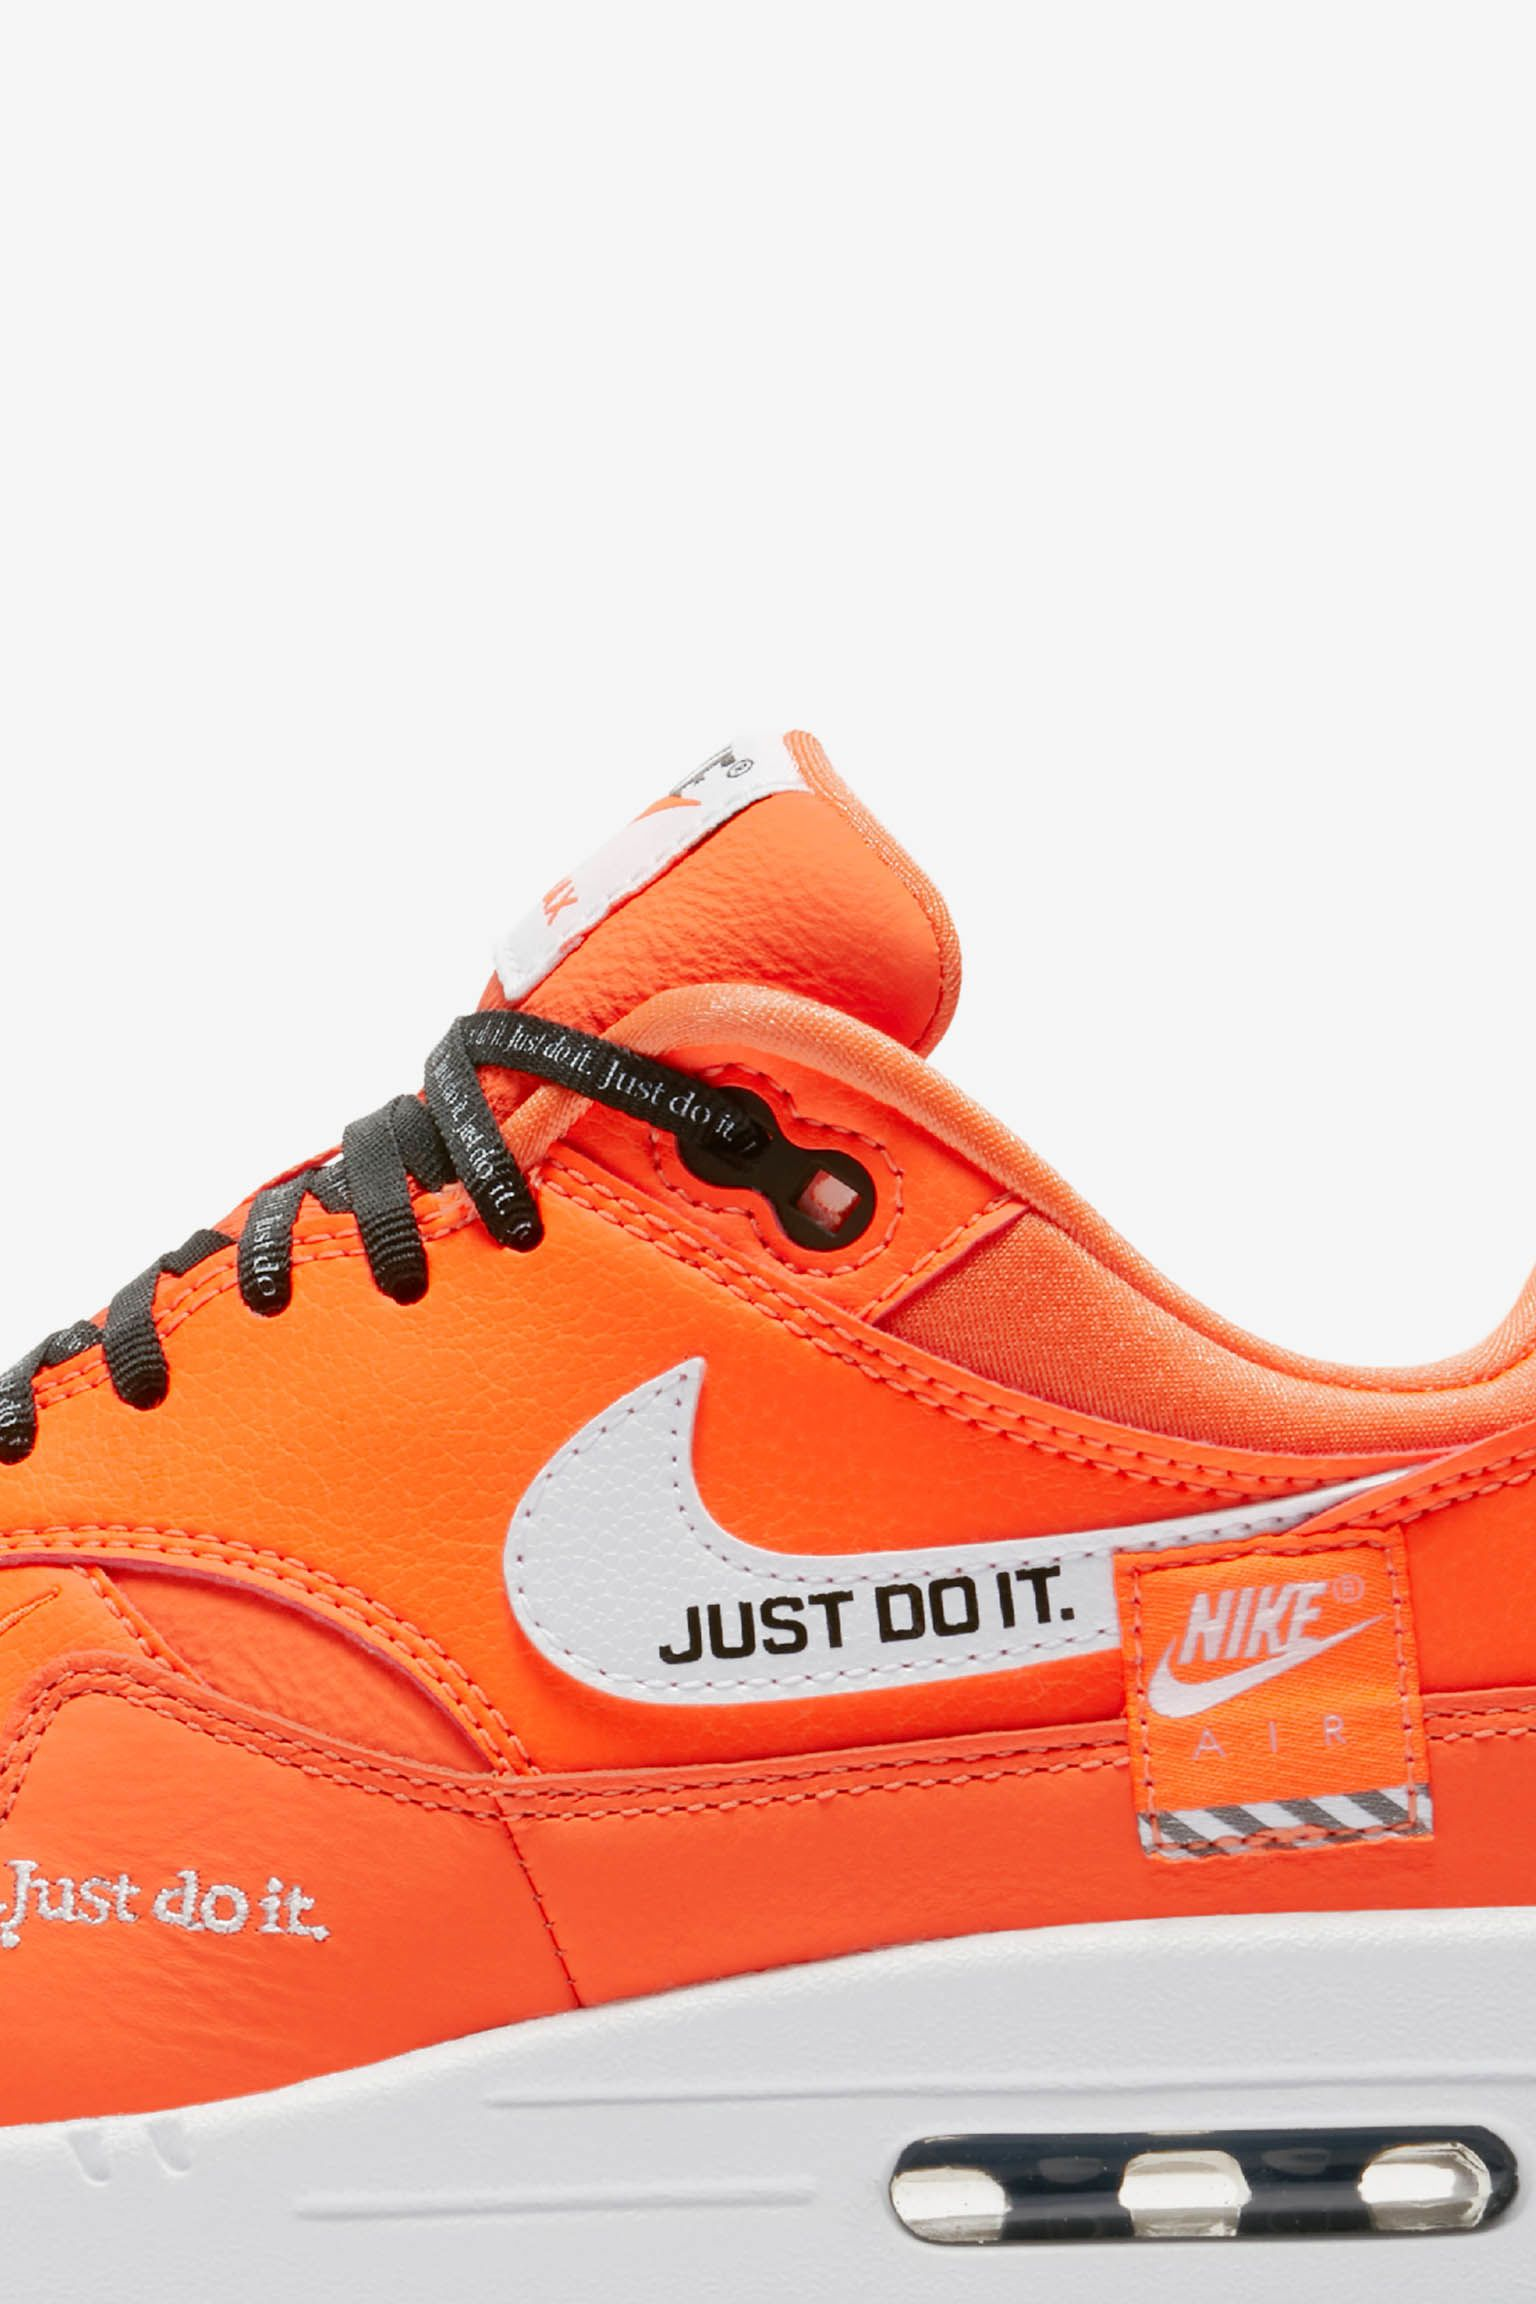 new concept 15b36 3c0fb  Total Just It Release 1 amp  Do Blanc  Nike Air Collection Max Orange  qw7COT